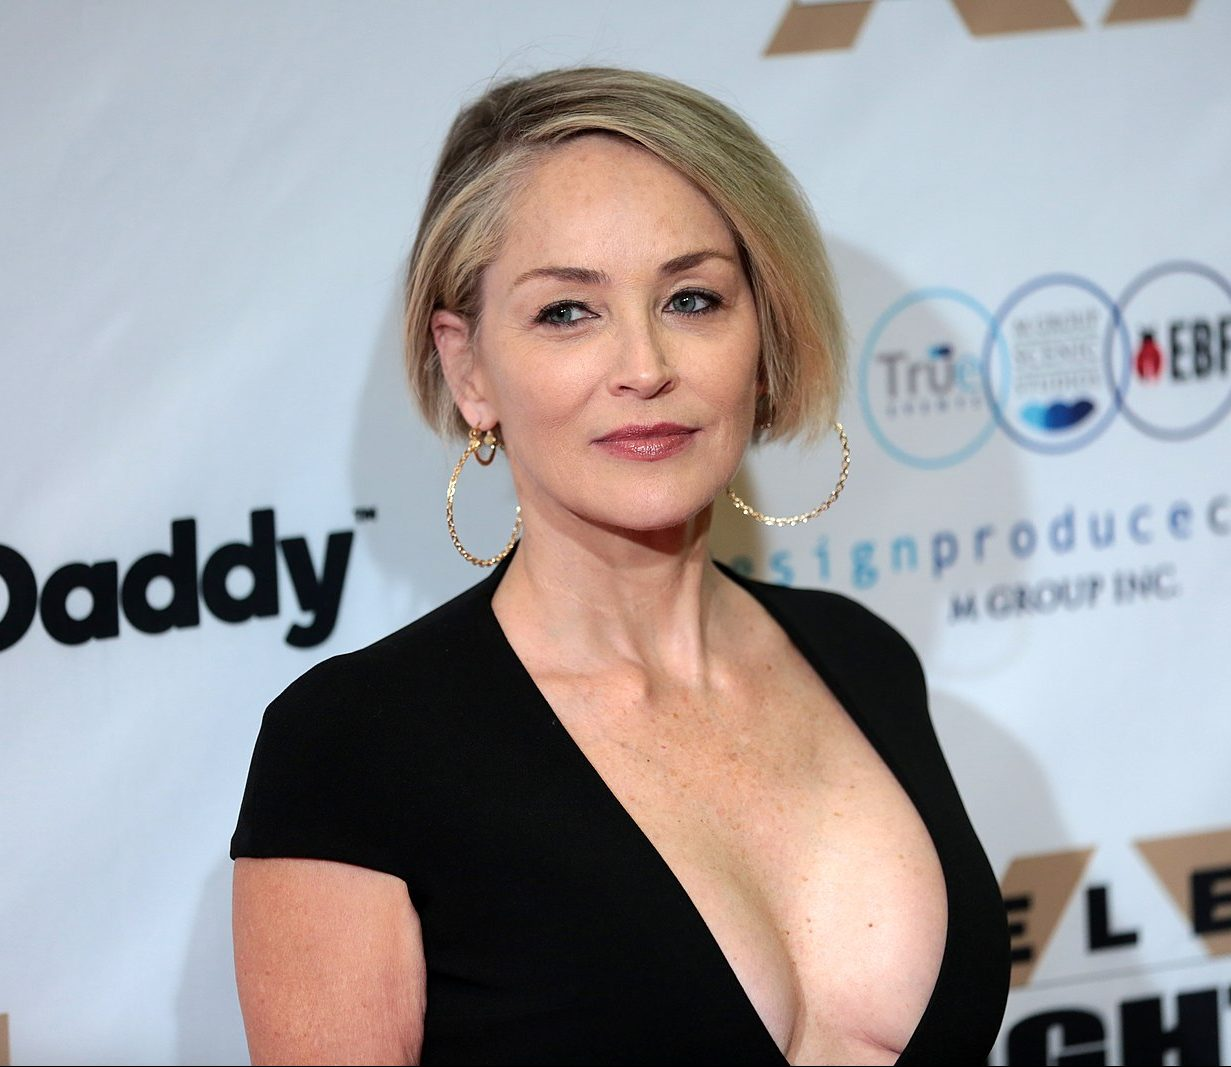 1599px Sharon Stone 32687636384 e1621943951913 20 Things You Never Knew About So I Married An Axe Murderer